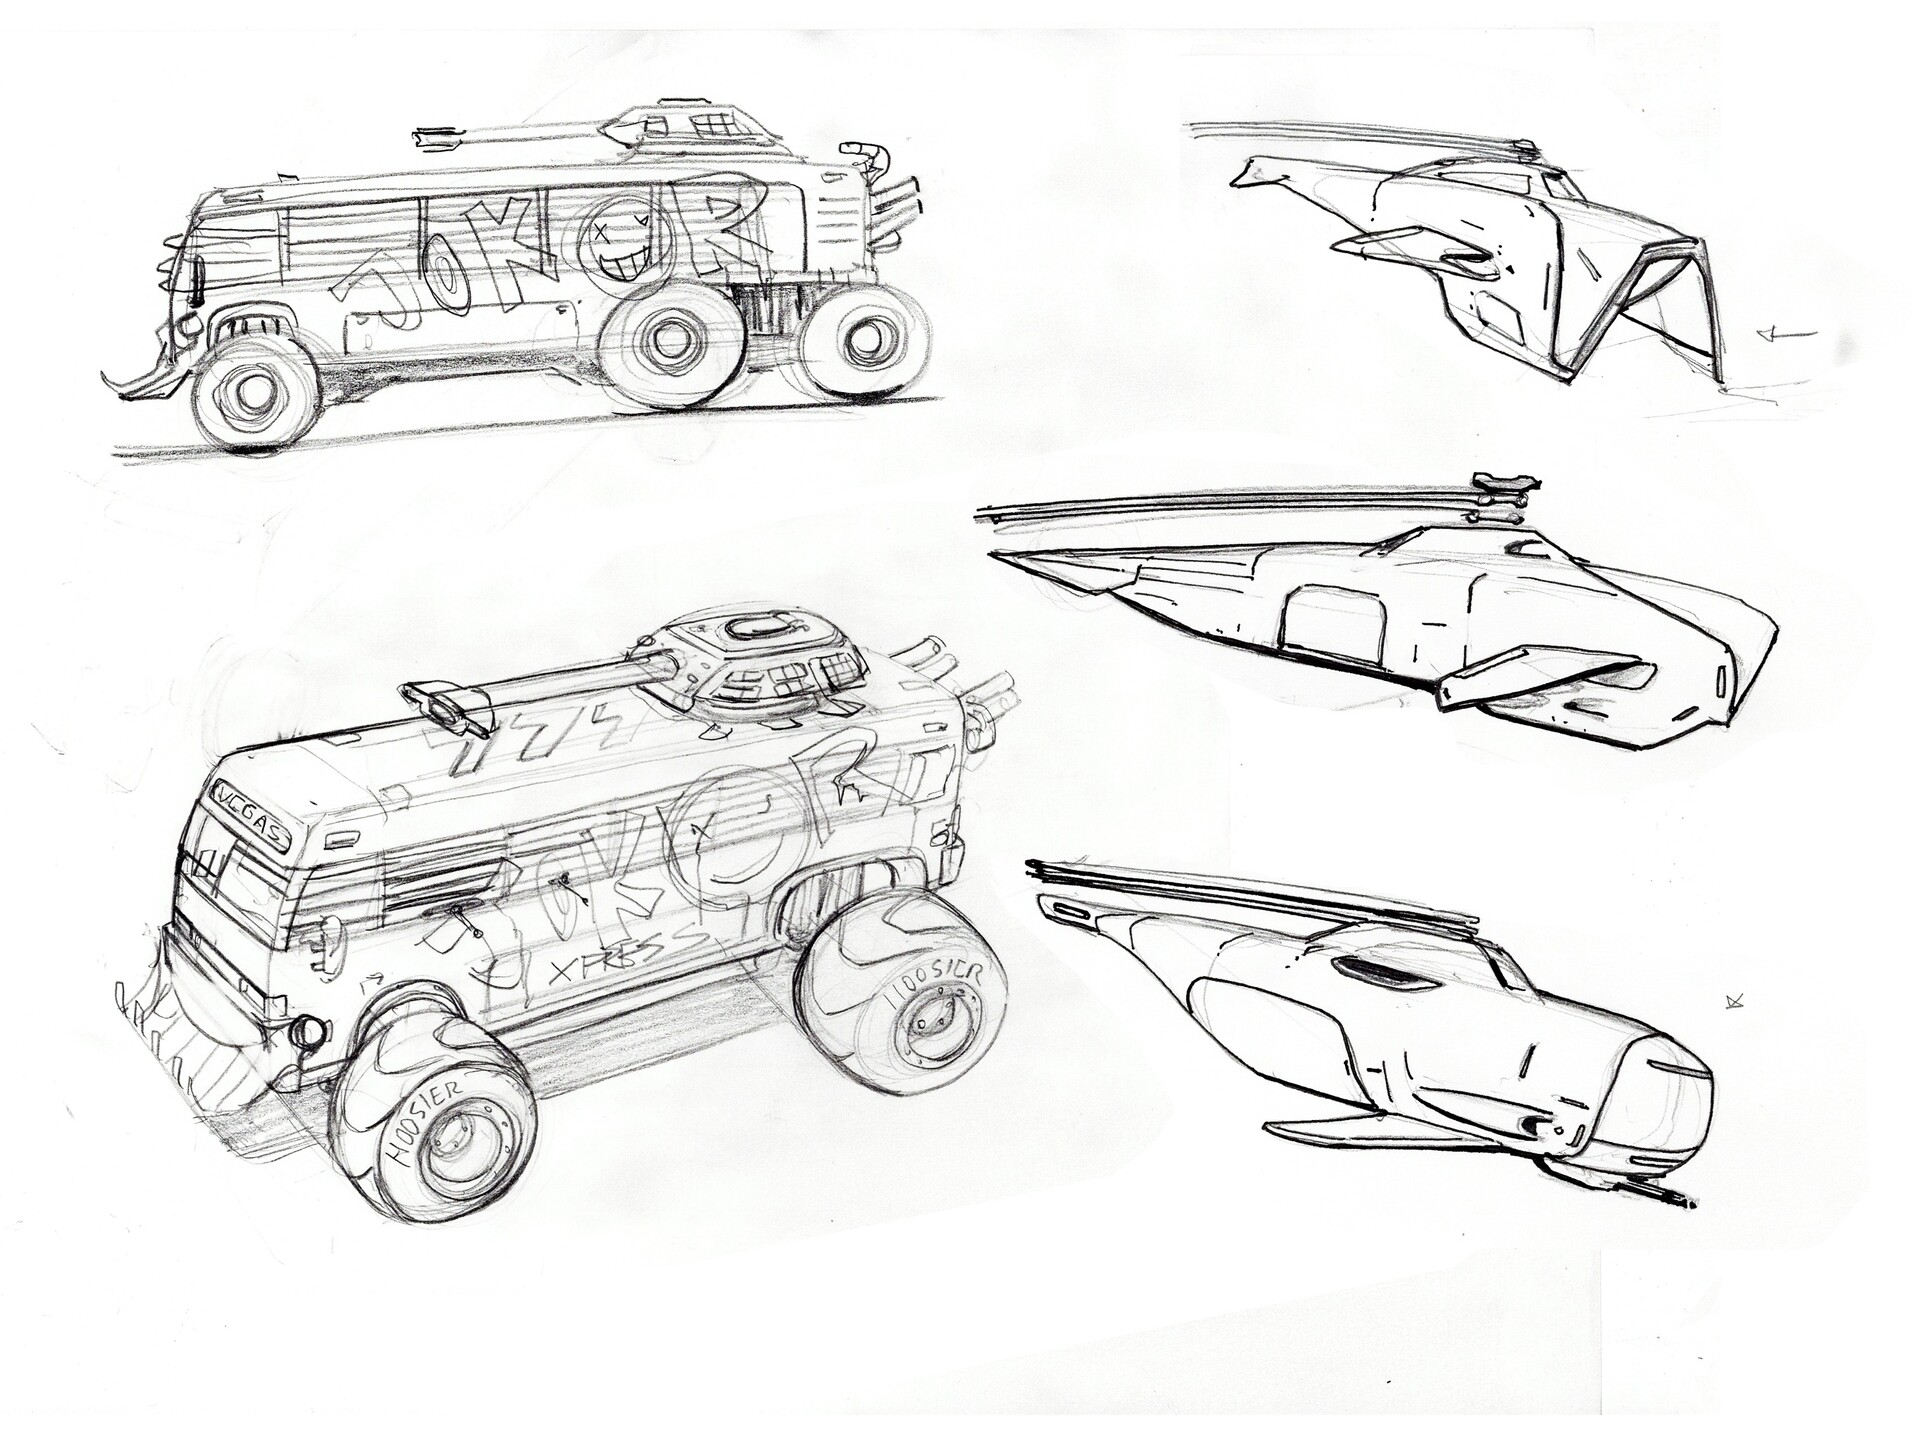 military craft off the black market. The joker mobile is a hijacked bus going to Vegas that was  junkyard welded with various fun and dangerous attachments. See props.